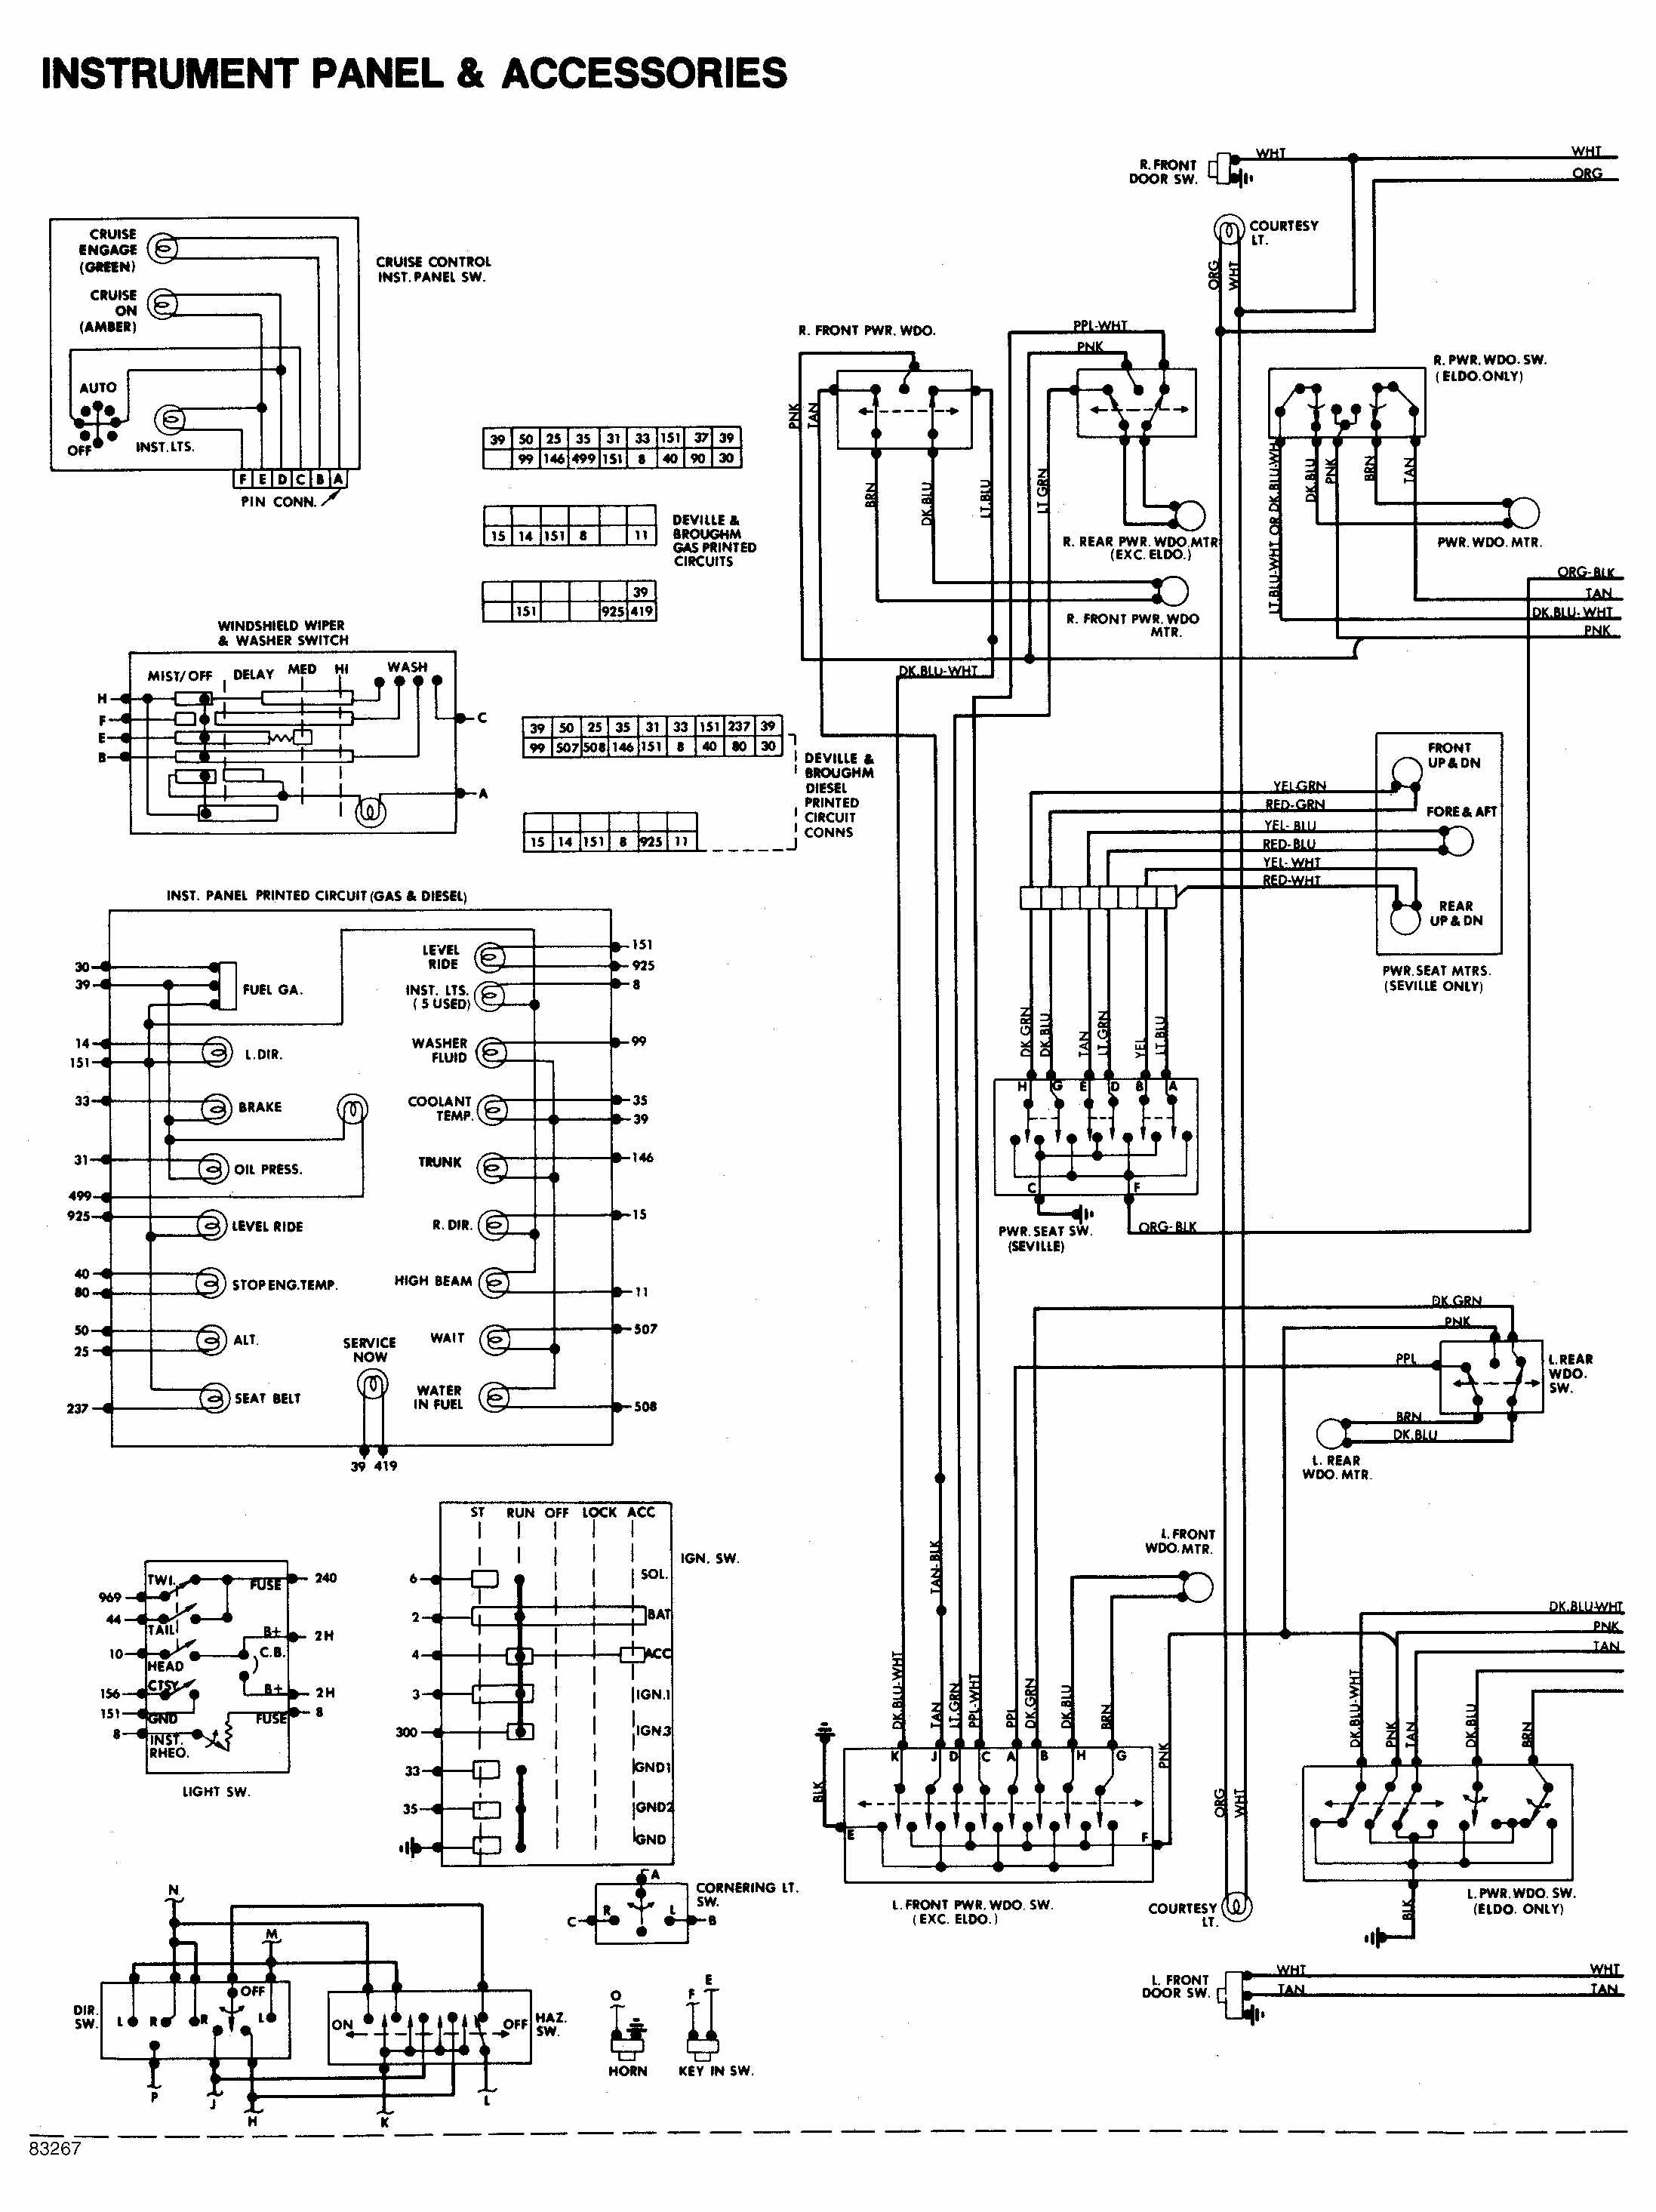 instrument panel and accessories wiring diagram of 1984 cadillac deville chevy diagrams  at soozxer.org